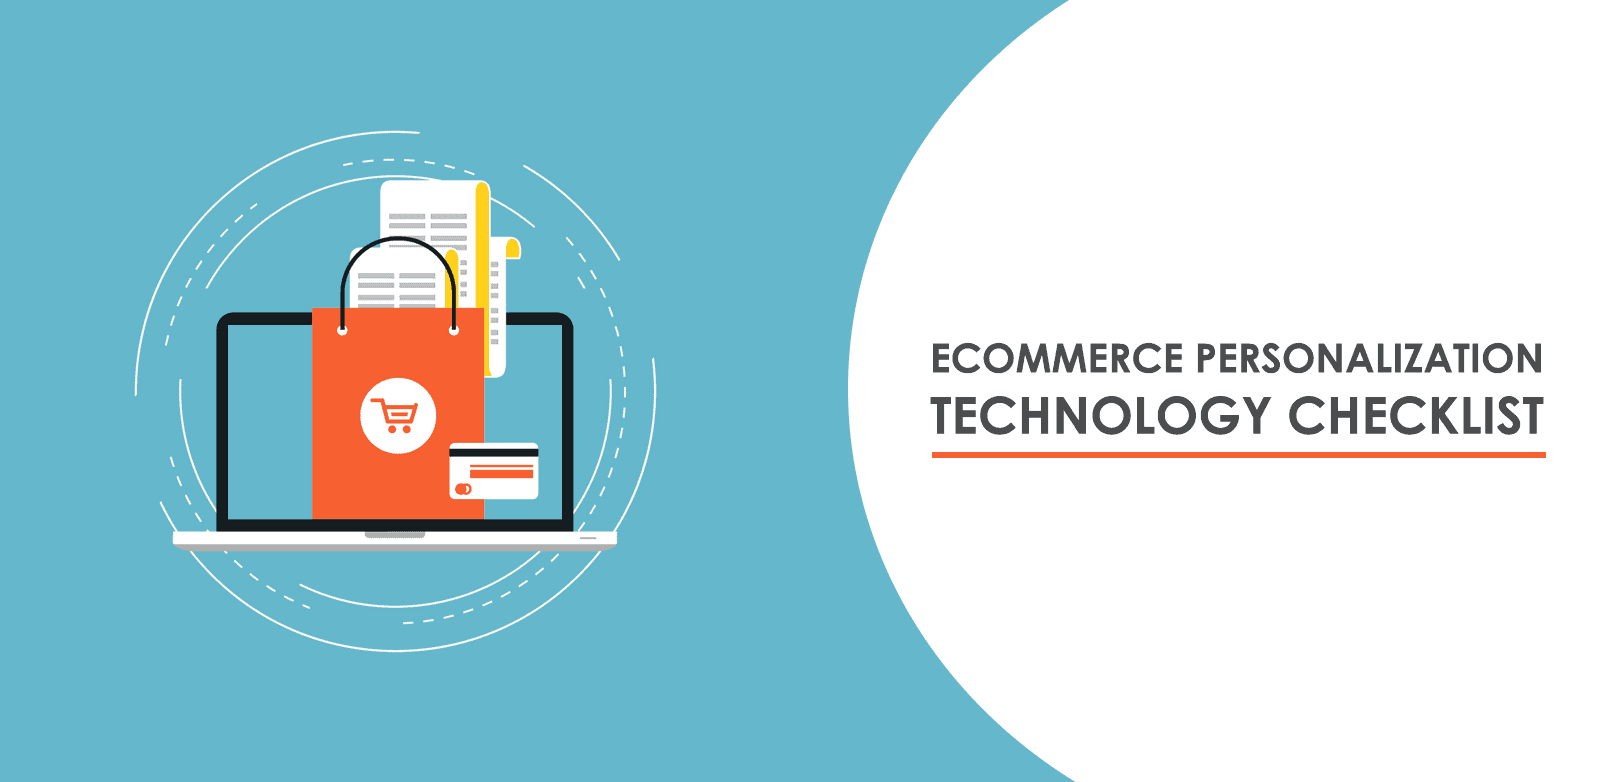 eCommerce Personalization Technology